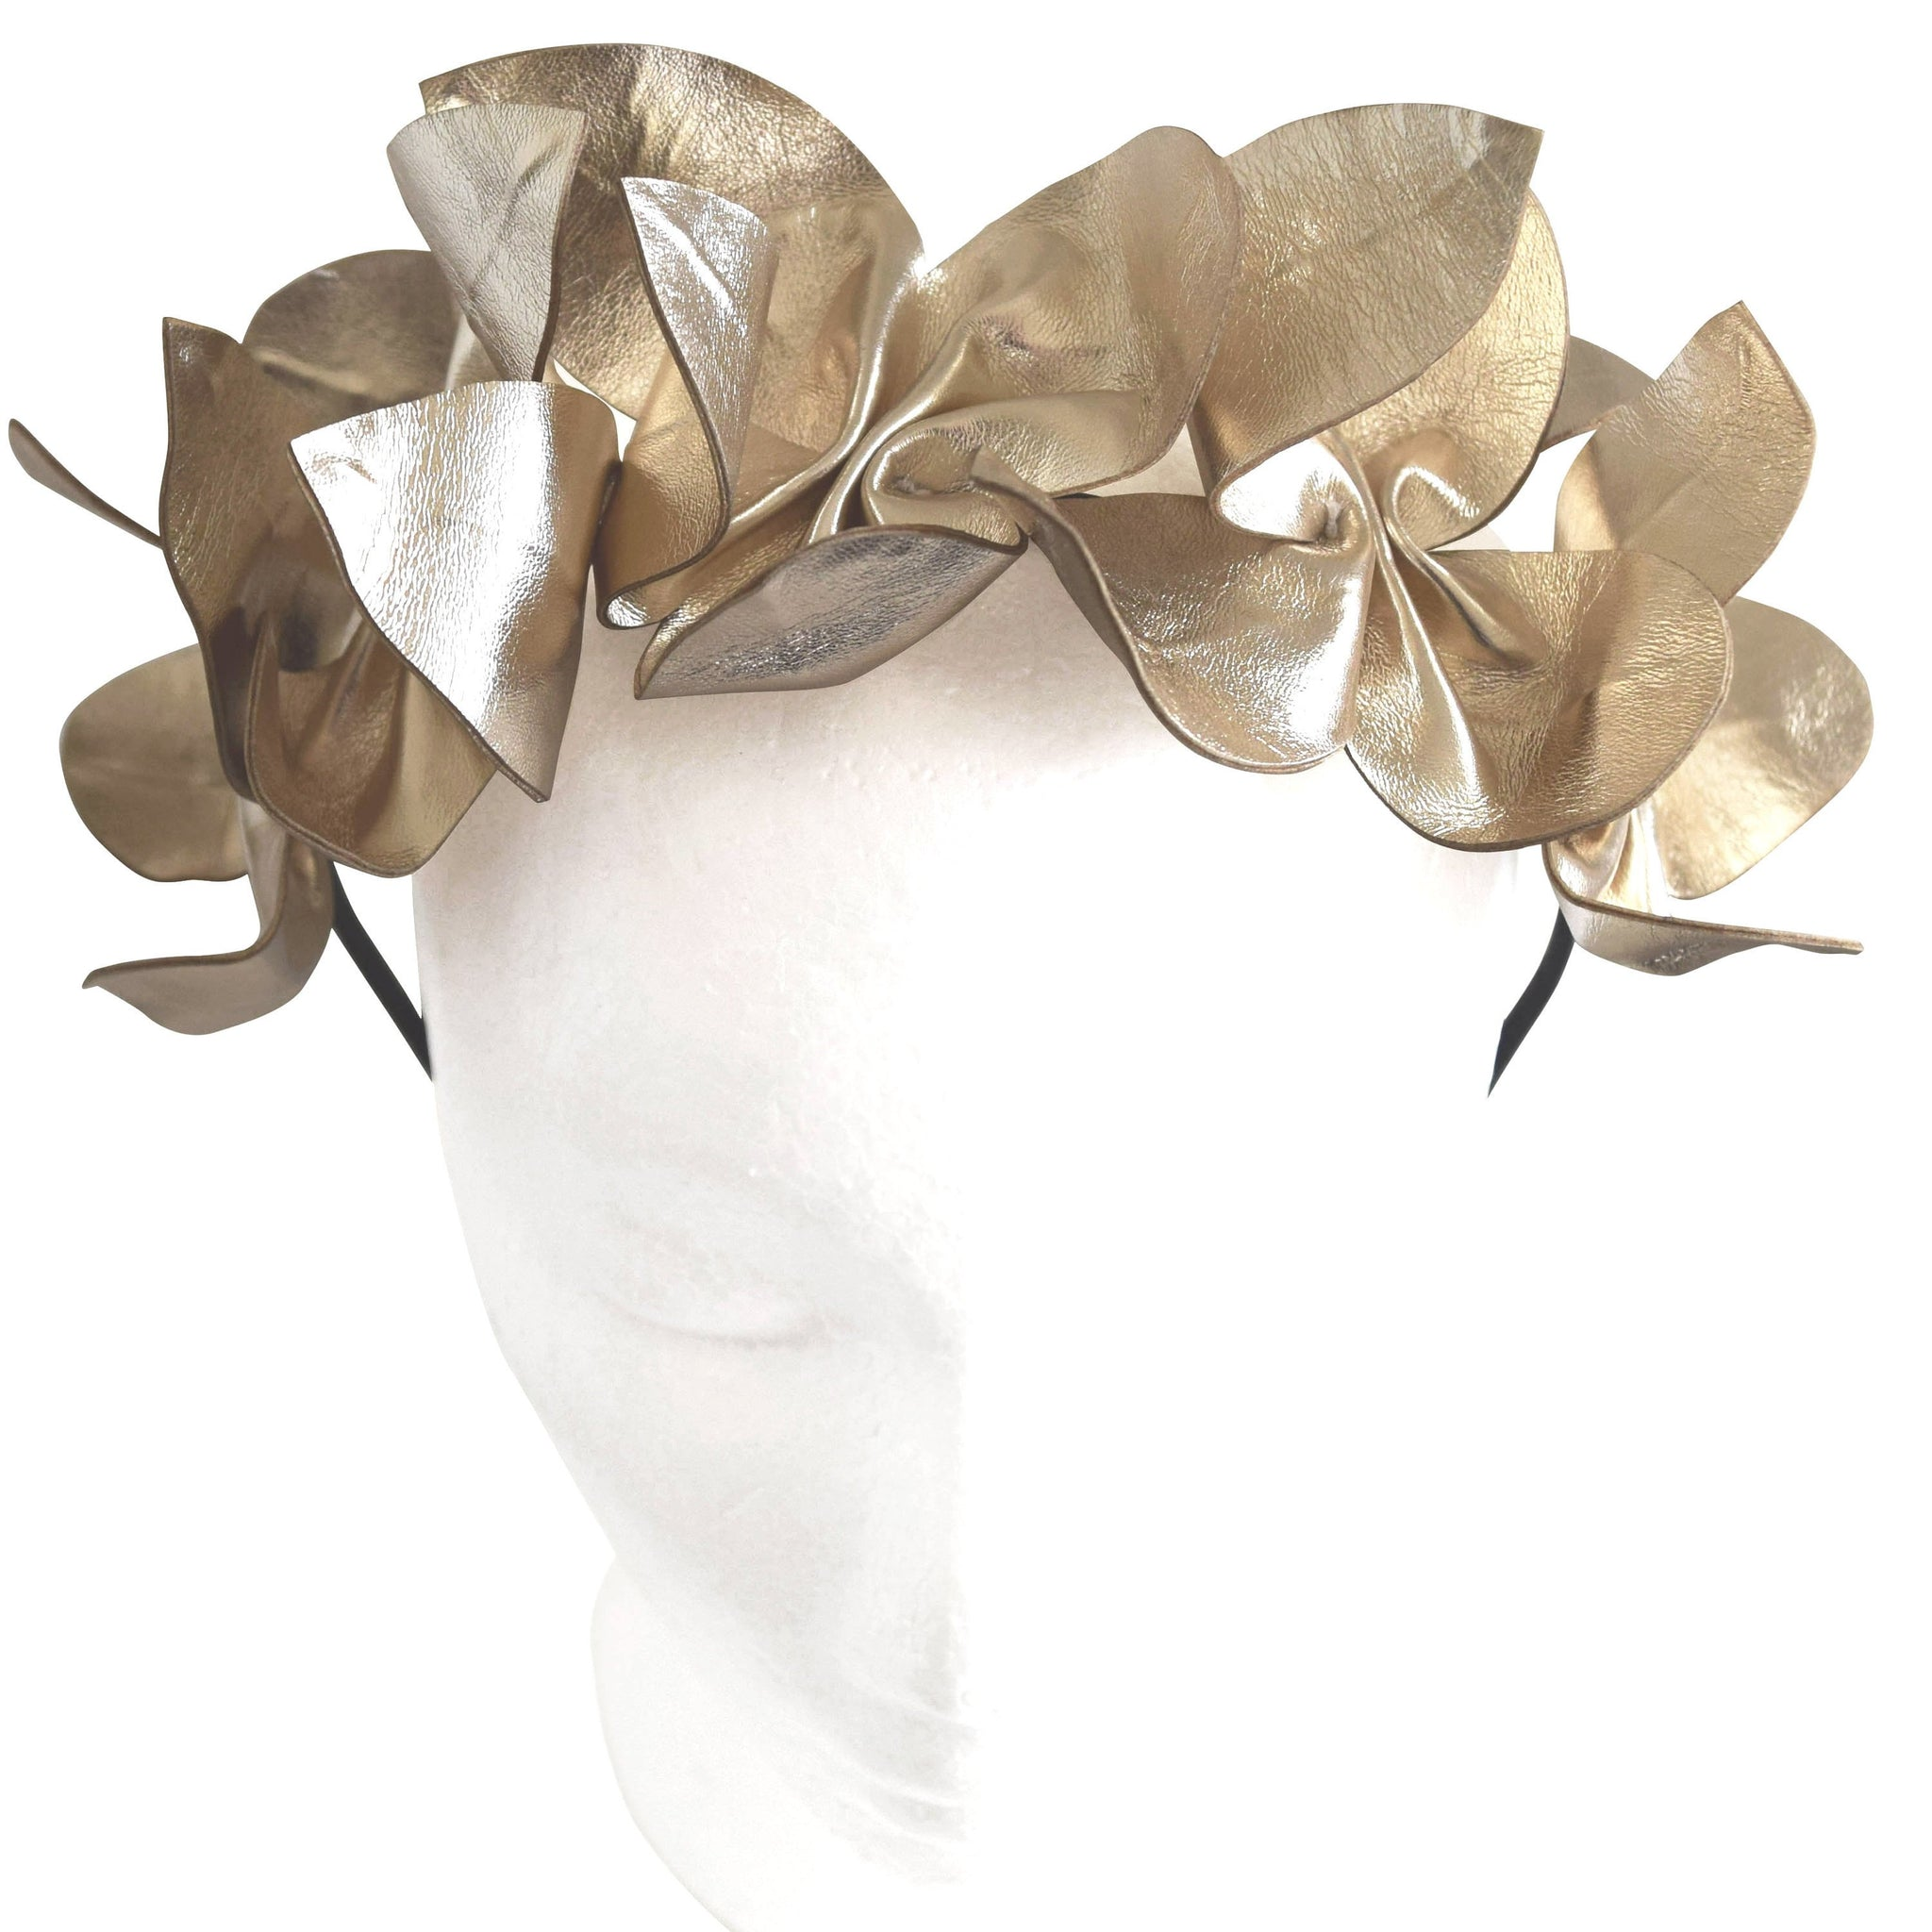 SALE item* Harper Gold Leather Crown, Kentucky Derby / Oaks Headband, Derby Hair Accessory, Spring Racing Fashion, Women's Derby Fascinators